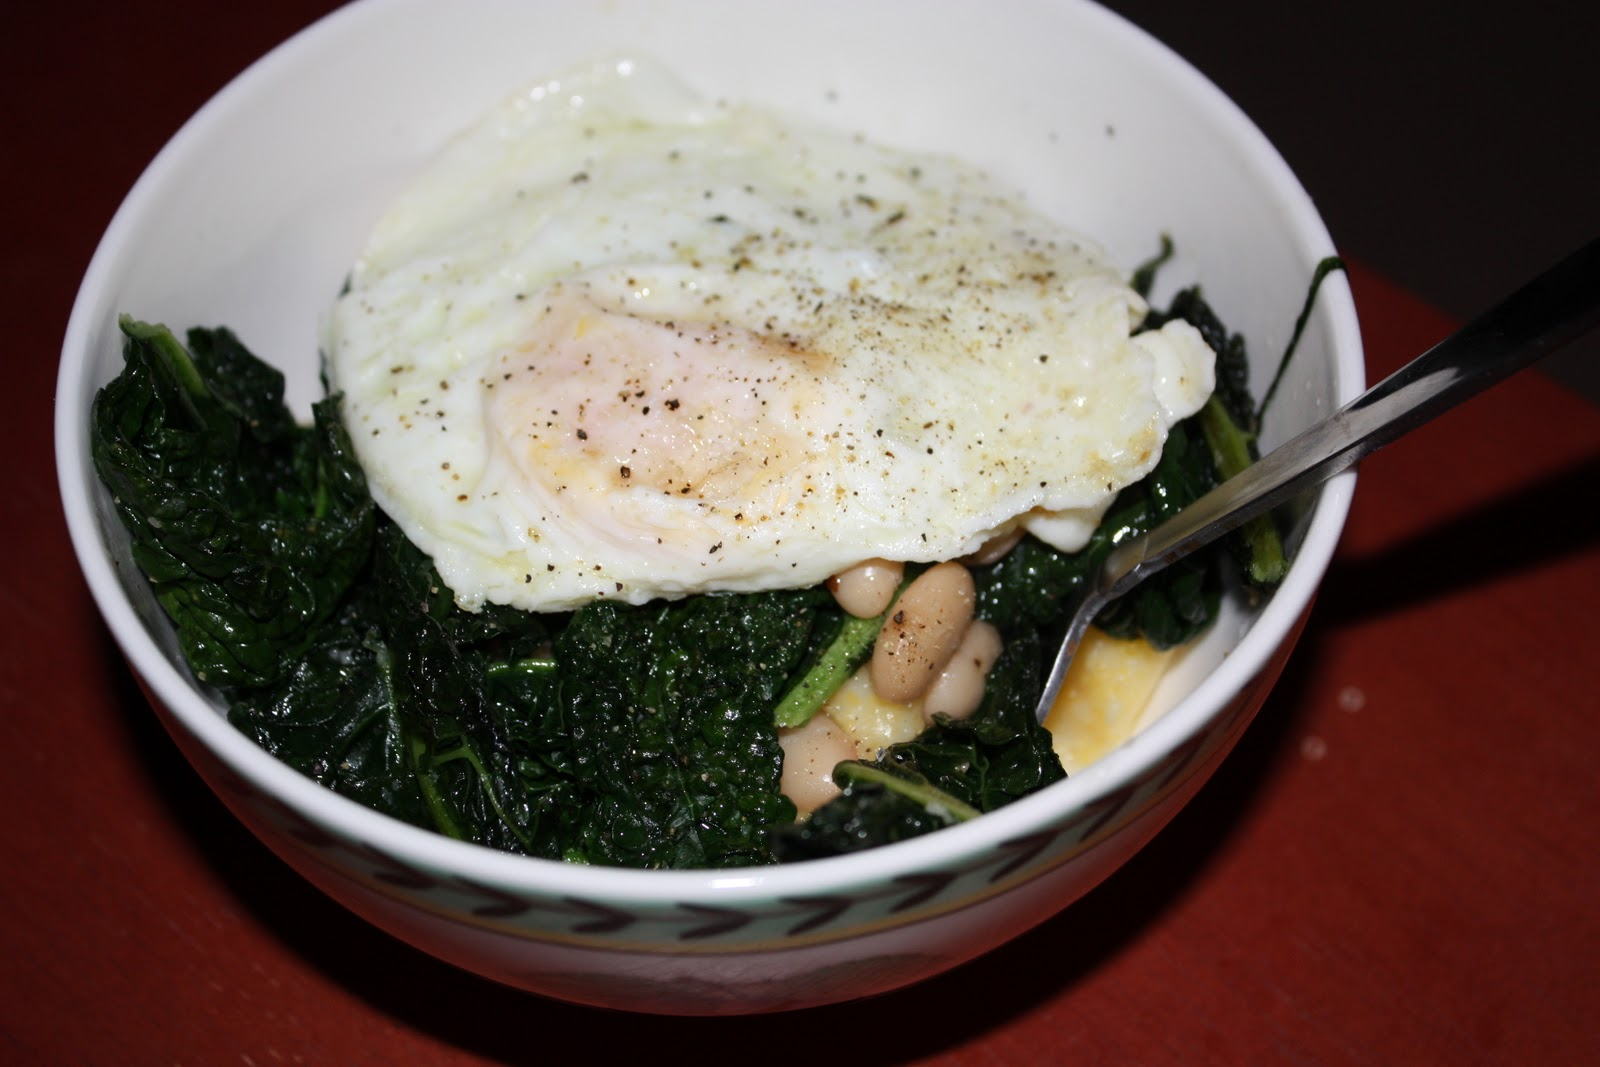 married to a meat-eater: Polenta with Kale, White Beans, and Fried Egg